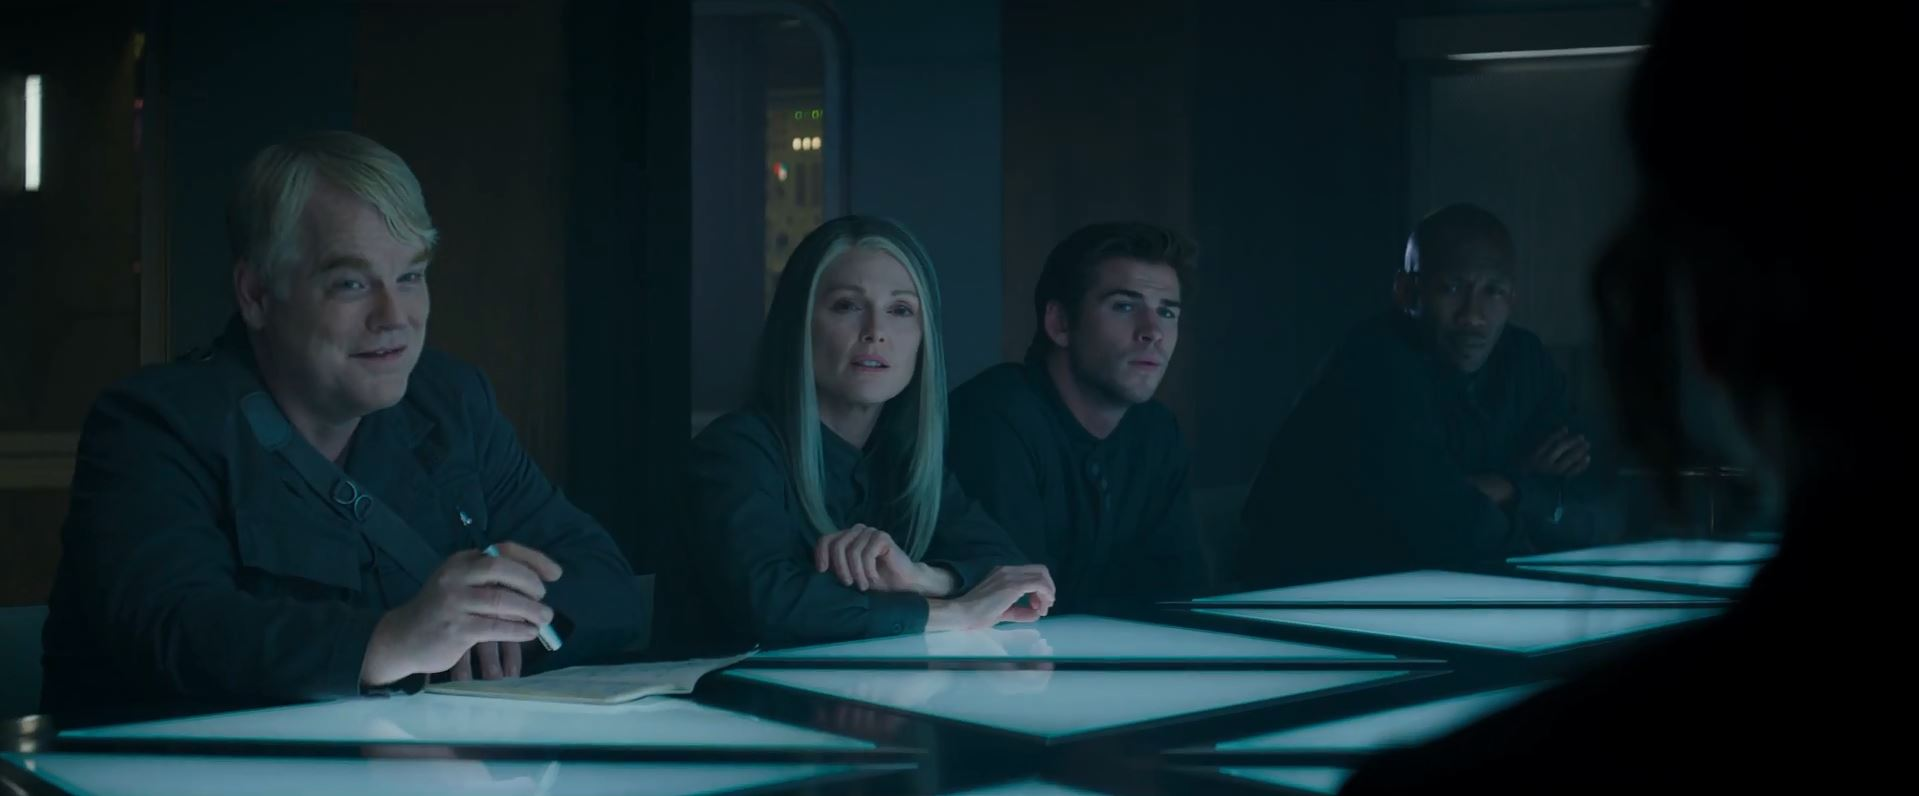 The Hunger Games Mockingjay Part 1 Trailer - Philip Seymour Hoffman as Plutarch Heavensbee and Julianne Moore as President Alma Coin